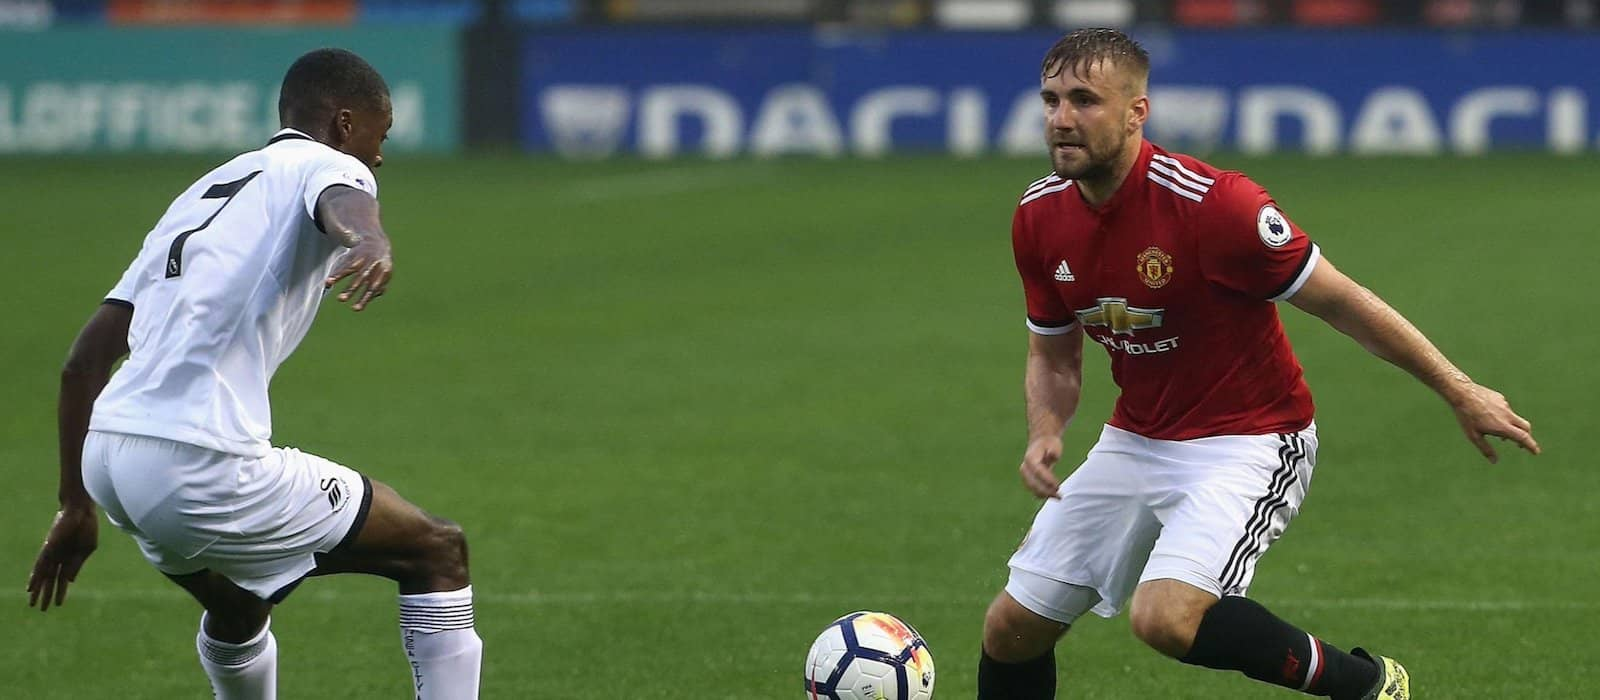 Luke Shaw's relationship with Jose Mourinho has completely broken down – report